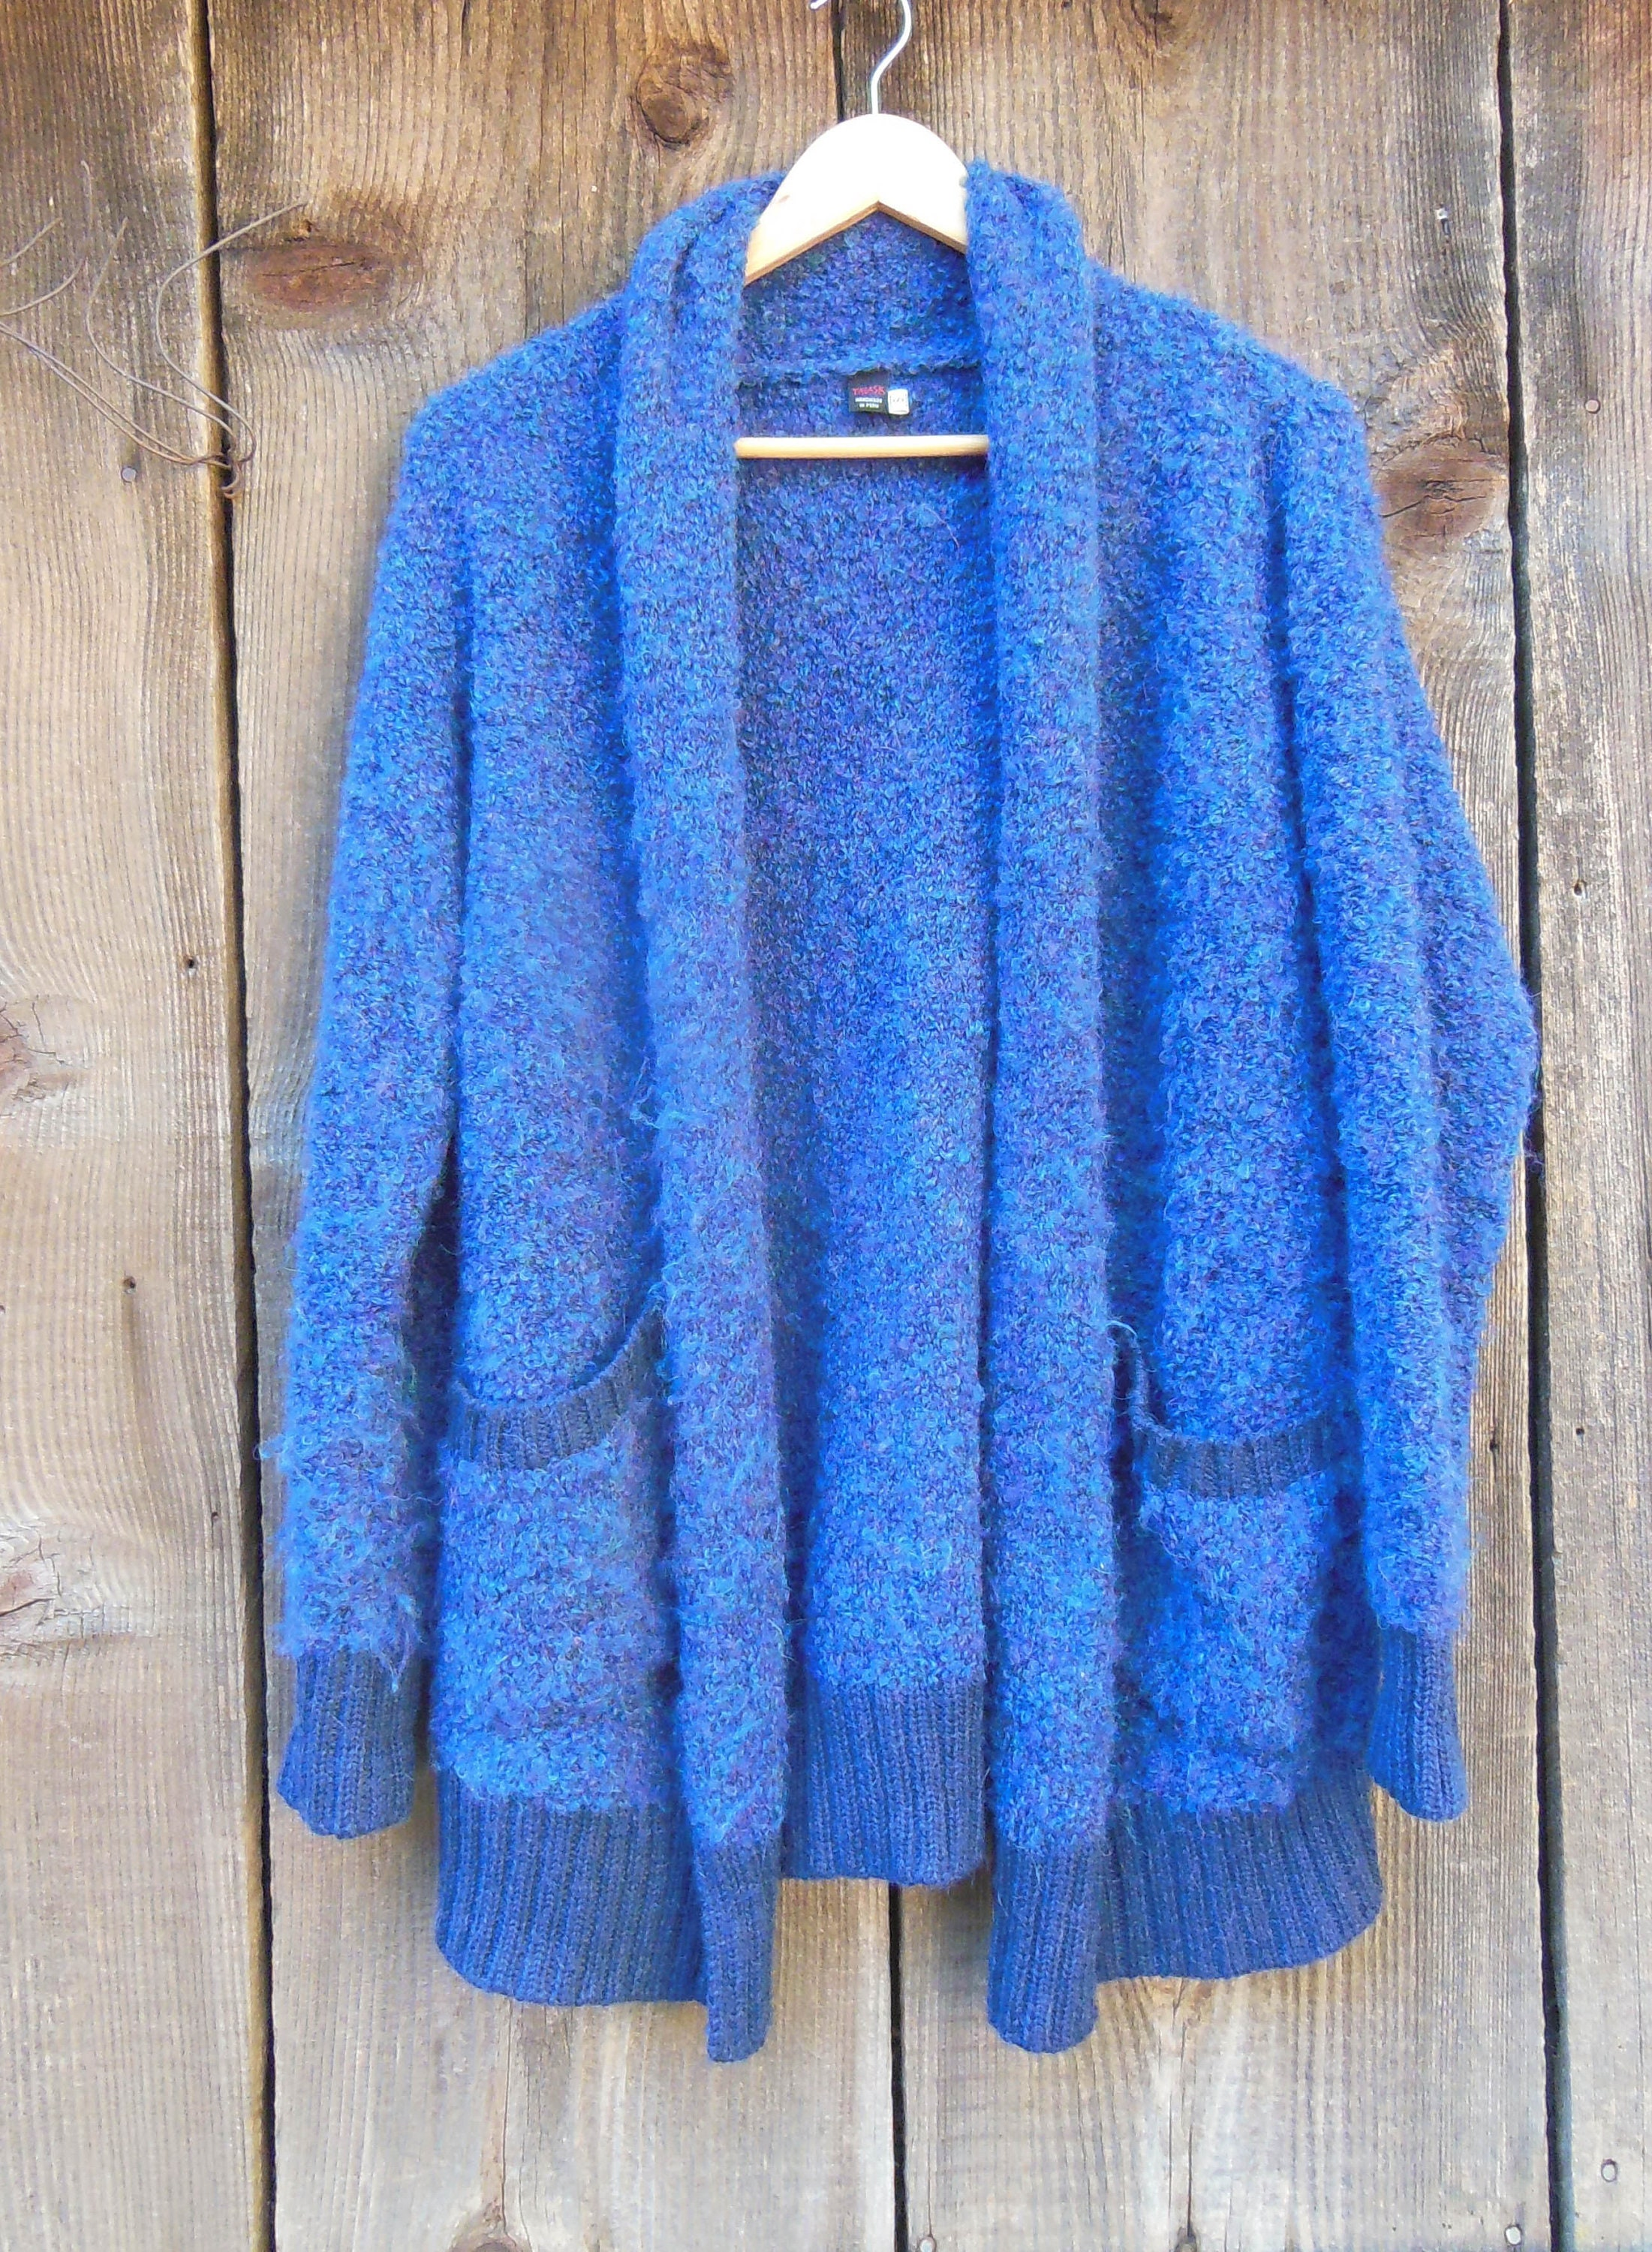 80s Sweatshirts, Sweaters, Vests | Women 80S Vintage Alpaca CardiganWool Blend Sweater Fuzzy Soft Warm Boho Hipster Preppy Classic Winter Wear Long Hanging Pockets Fitted S $68.00 AT vintagedancer.com